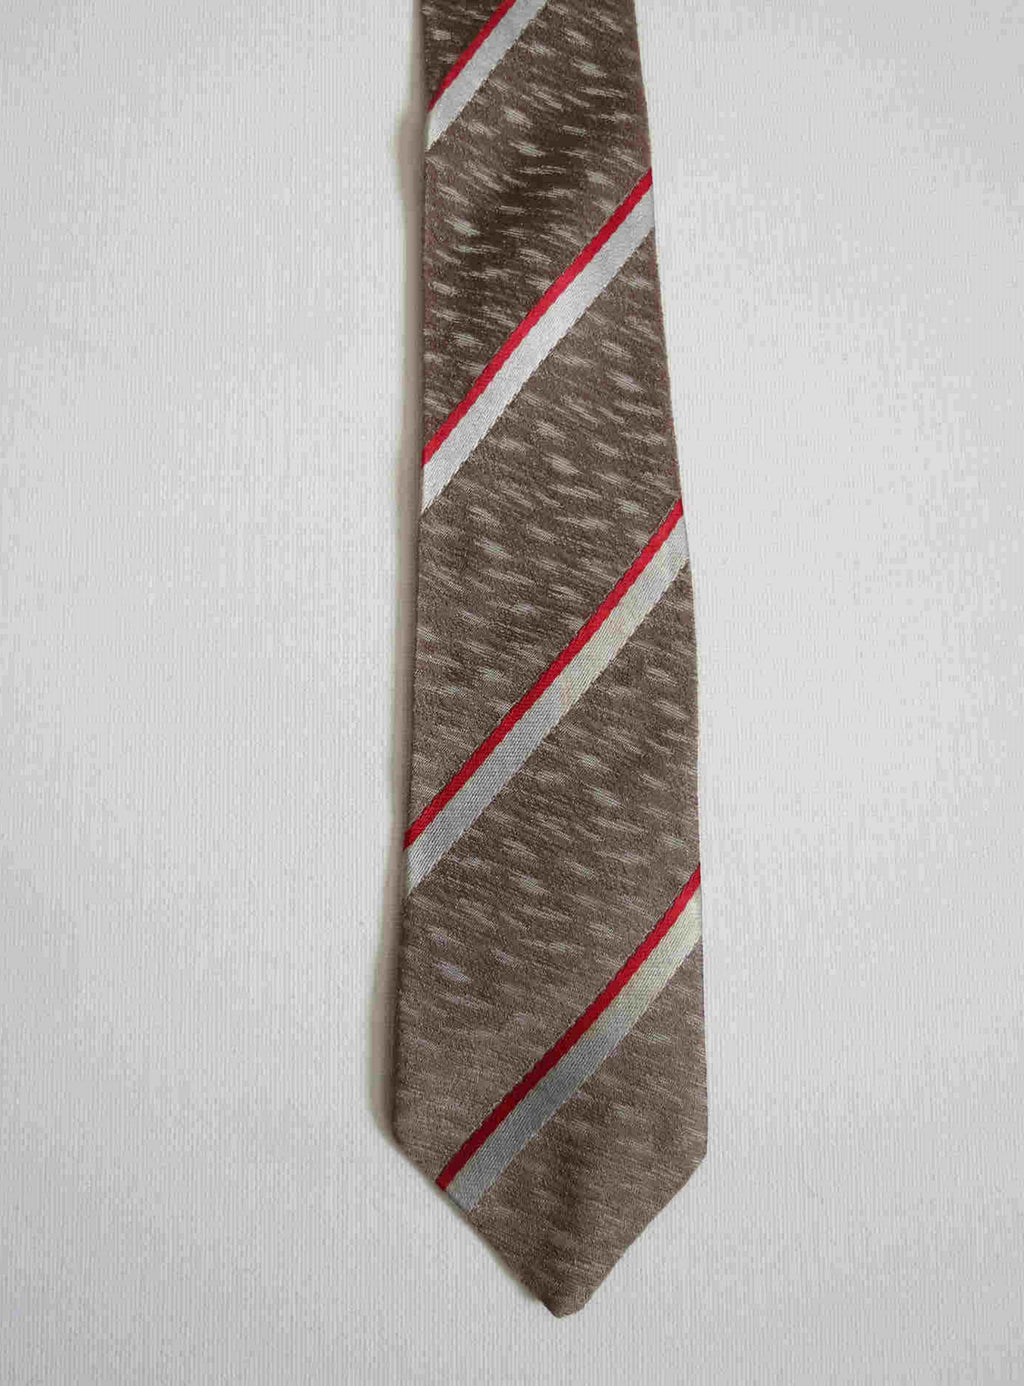 1950s vintage pewter rayon tie with silver and red stripes